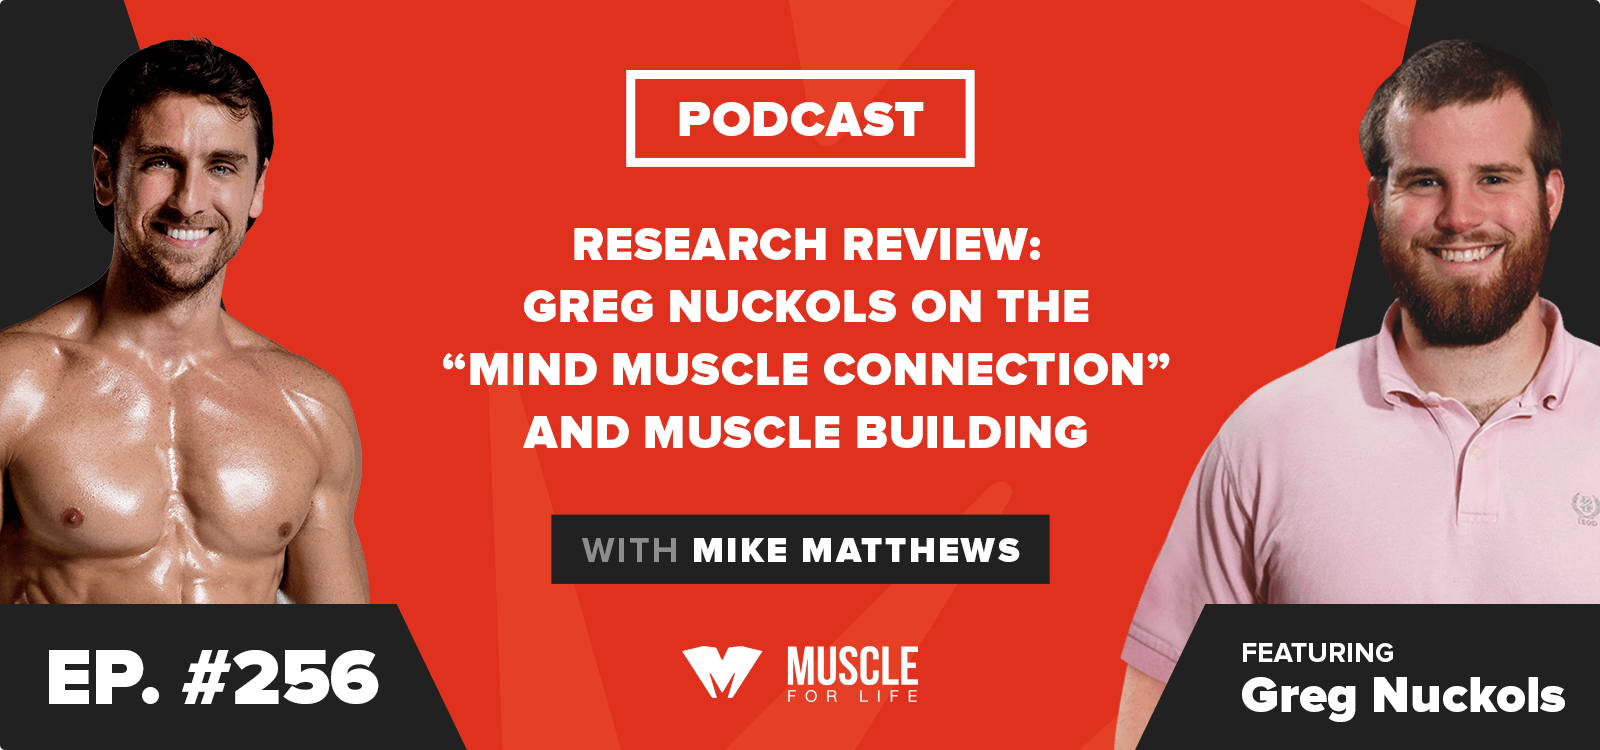 "Research Review: Greg Nuckols on the ""Mind Muscle Connection"" and Muscle Building"